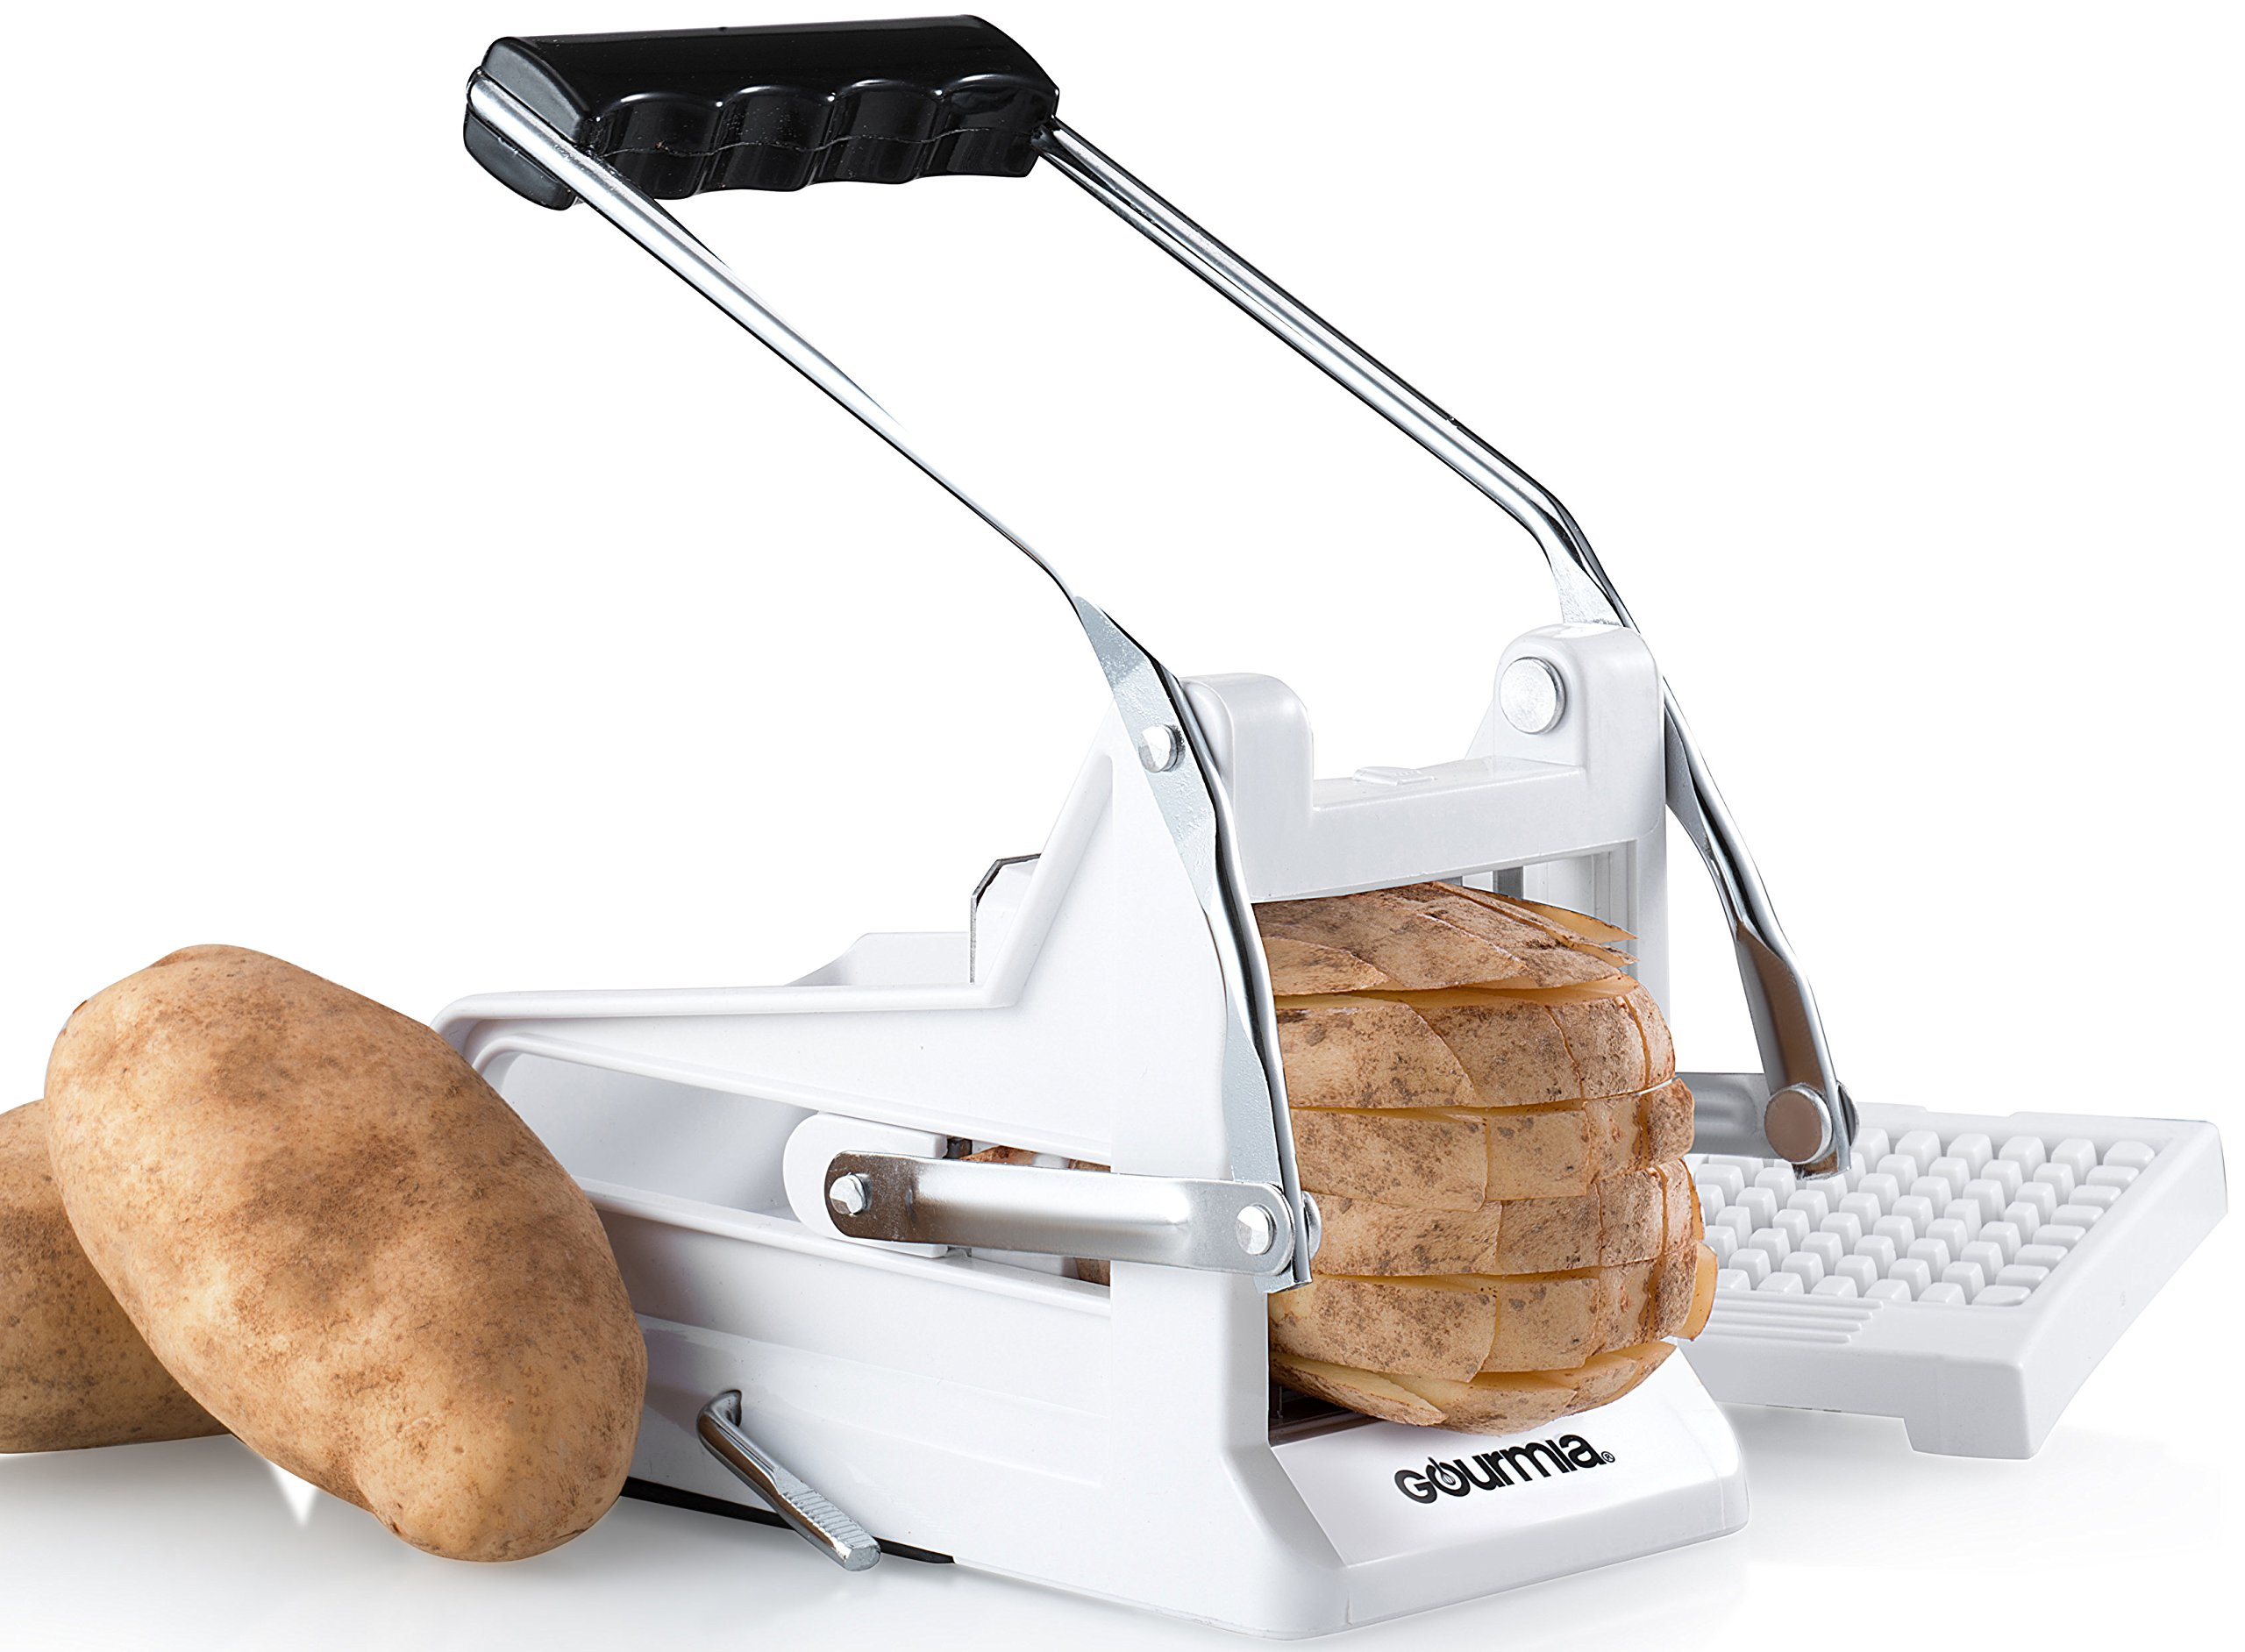 Electric Potato Slicer ~ Amazon starfrit rotato express electric